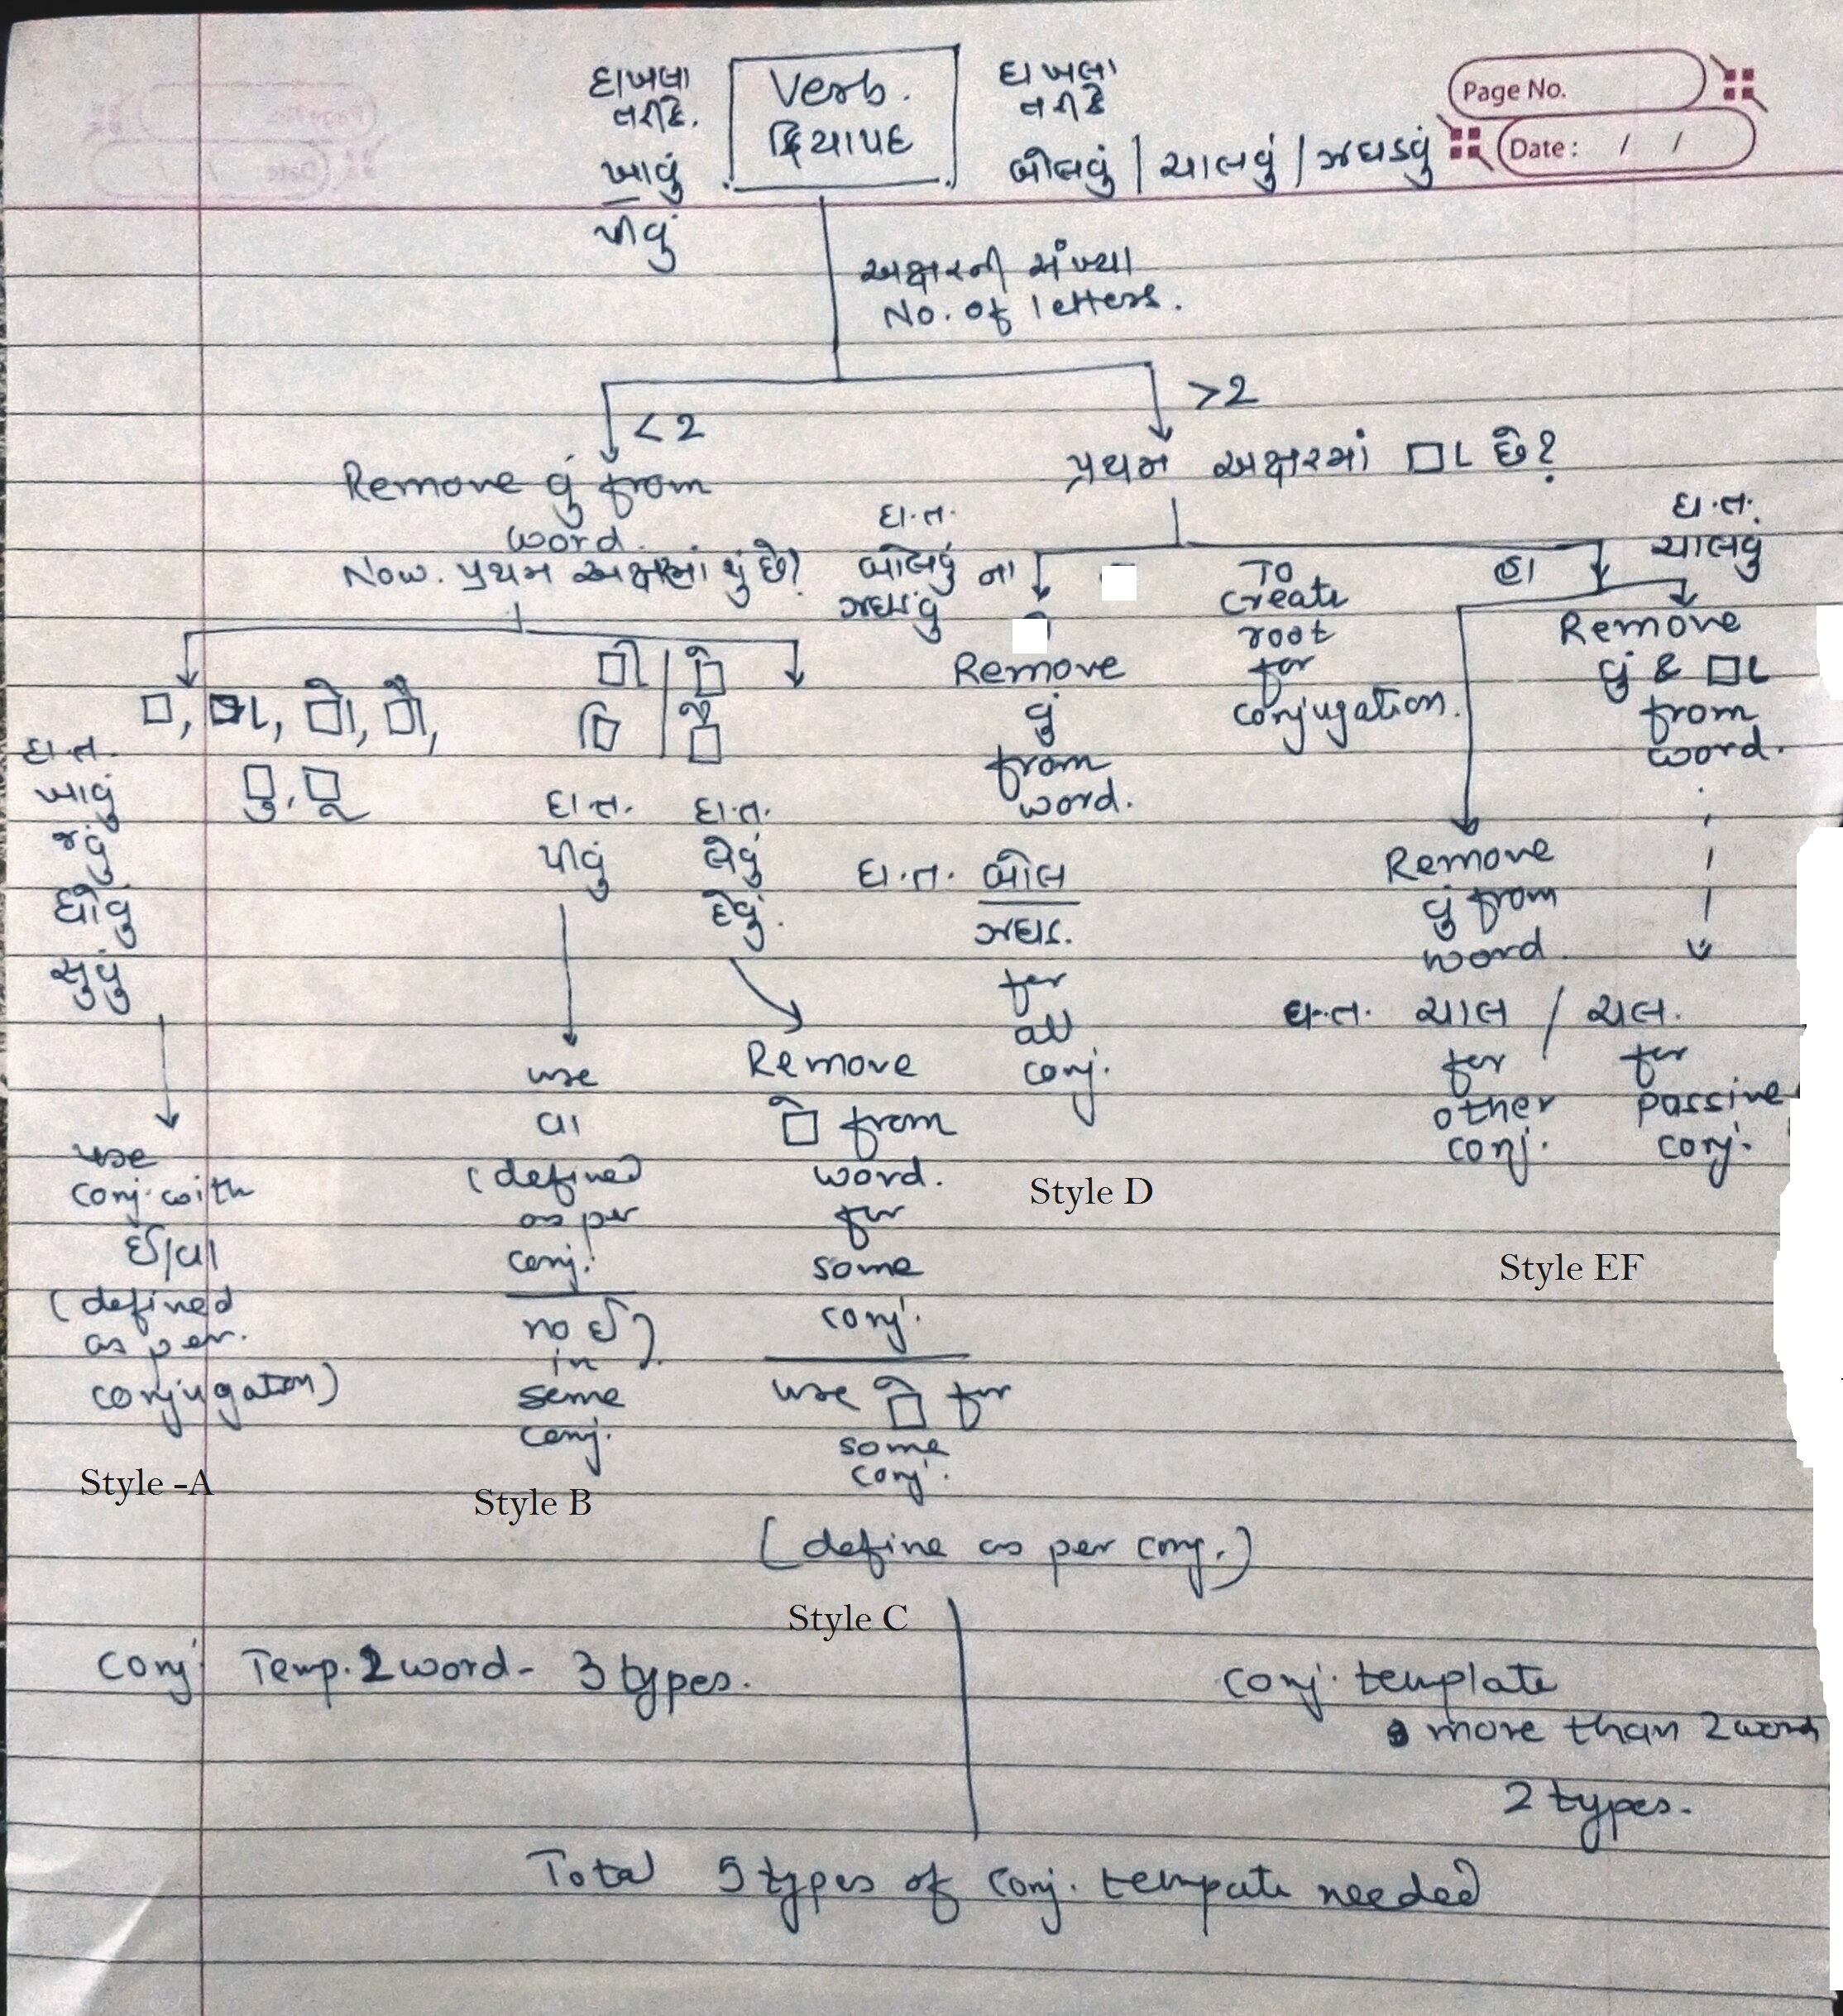 File:Algorithm flowchart for conjugation of verbs in Gujarati